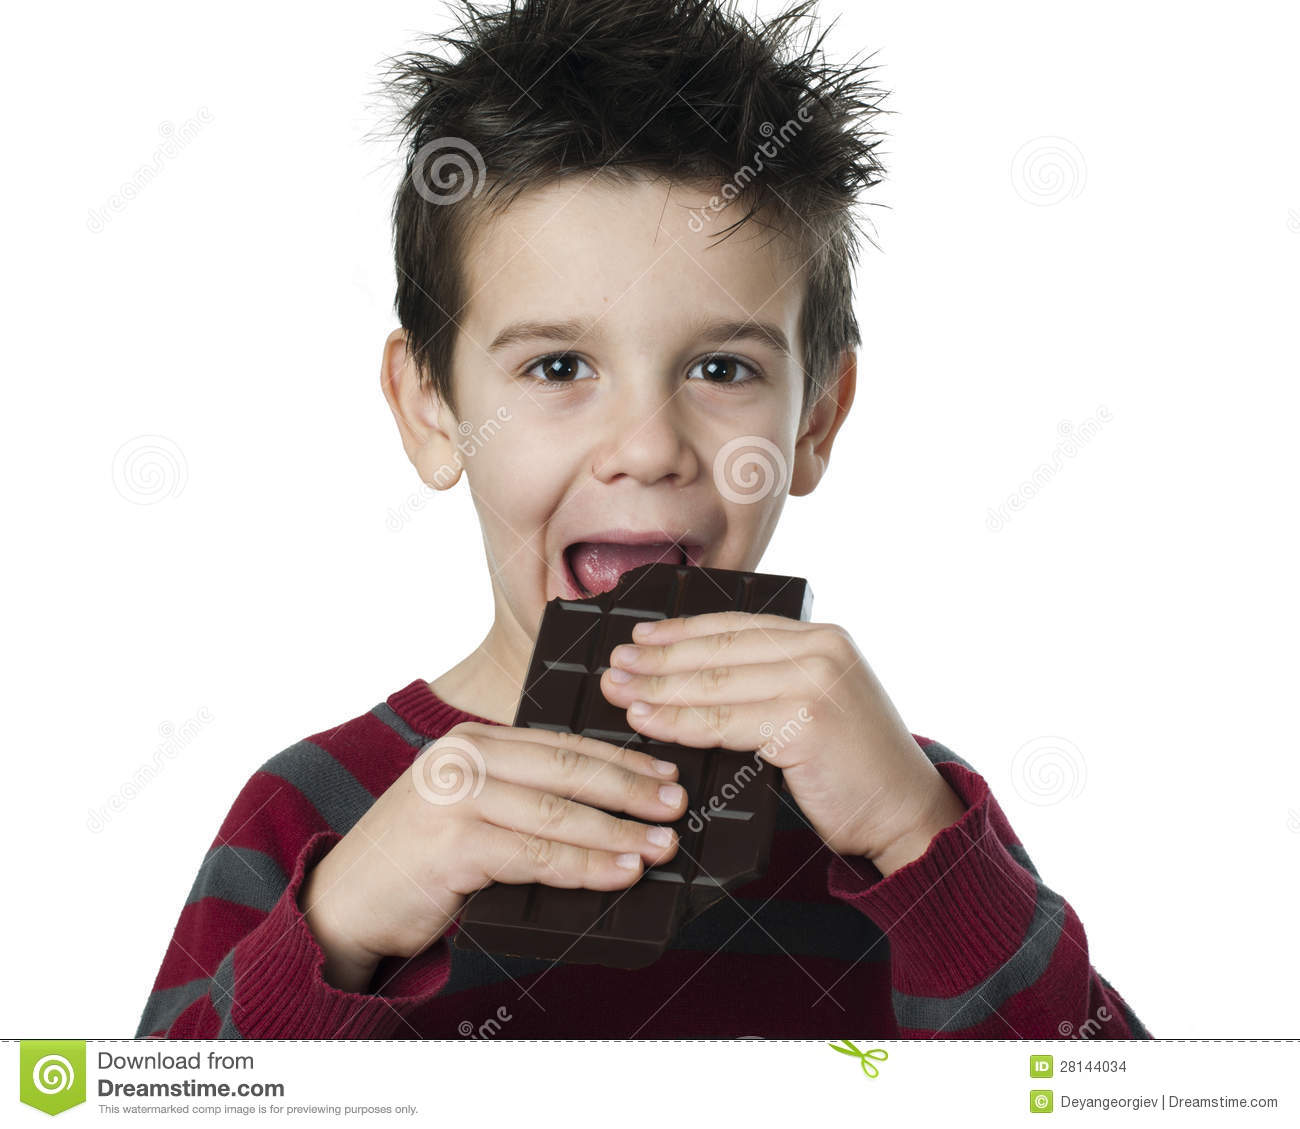 Smiling Kid Eating Chocolate Stock Images - Image: 28144034